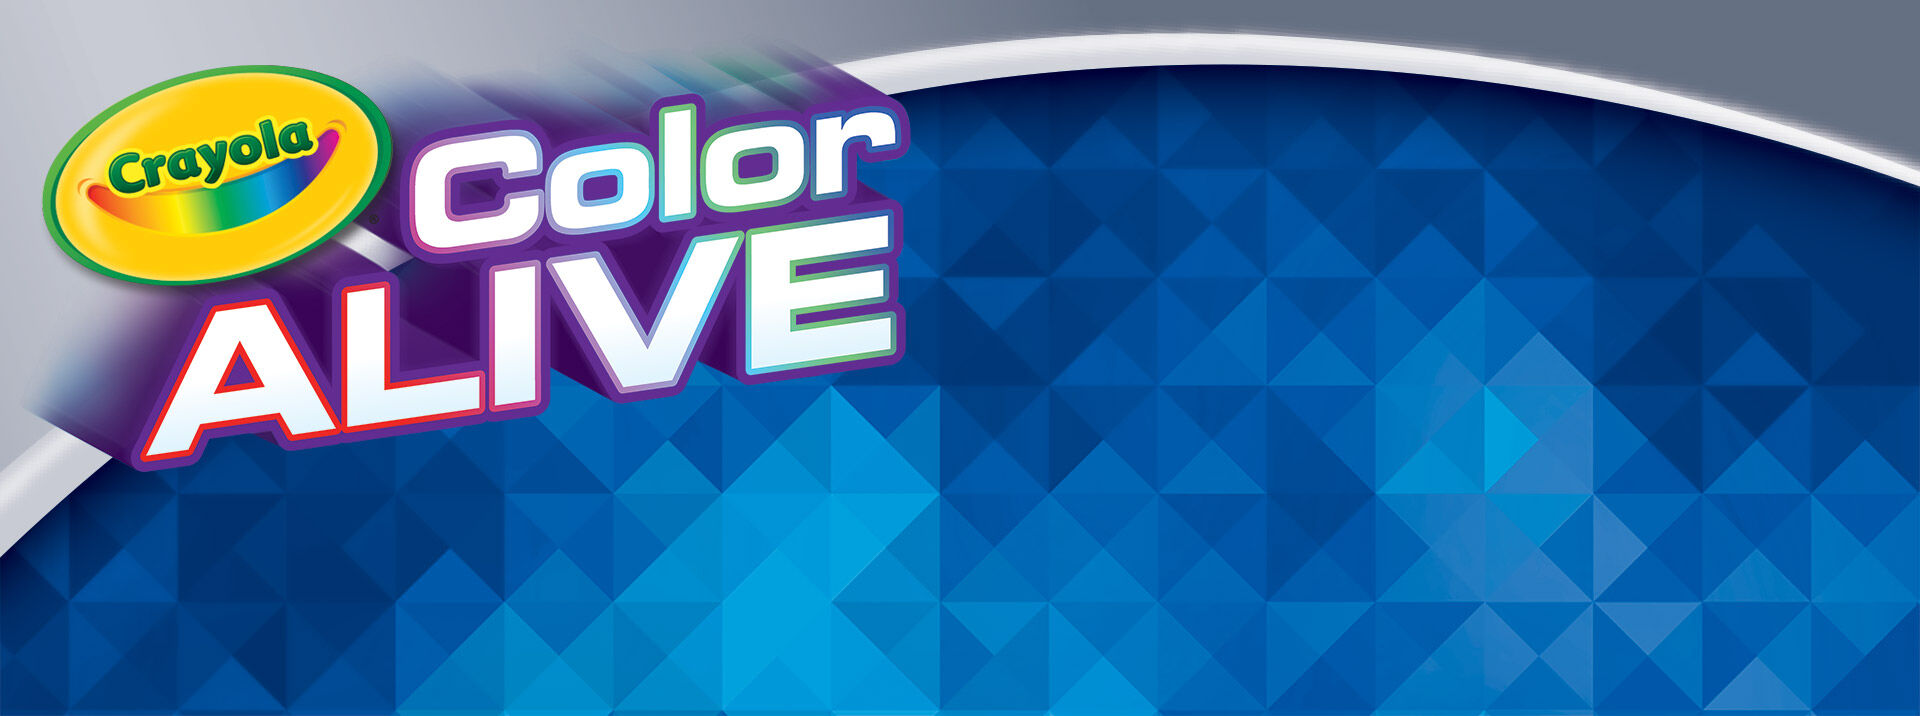 Color Alive